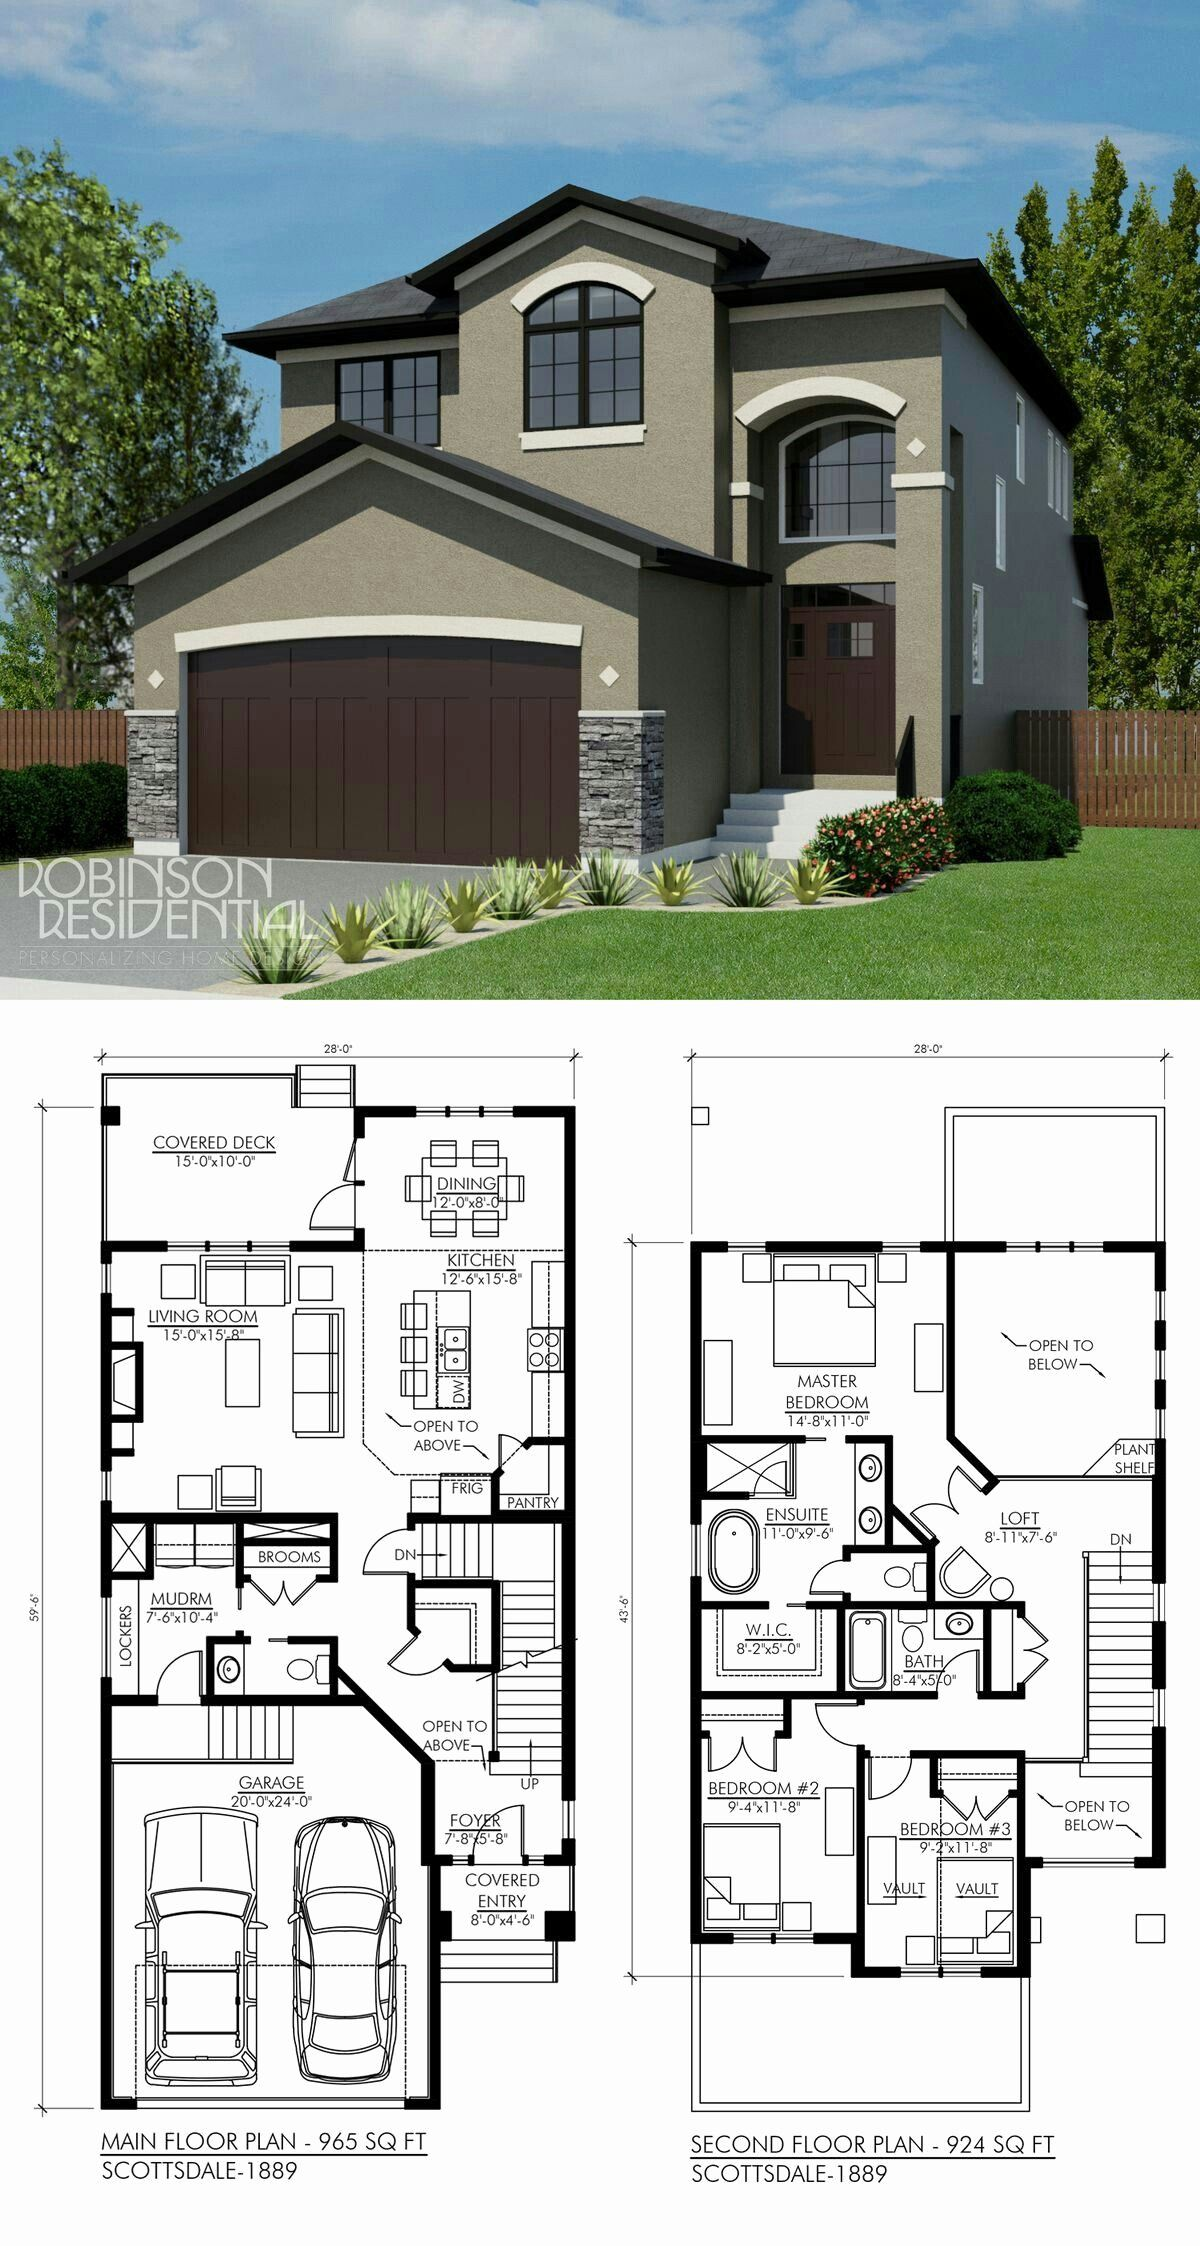 Sims 3 Modern House Ideas Awesome Small Home Design Plan 9 4 8 2m With 4 Bedrooms Untung Best In 2020 Sims House Plans House Blueprints Affordable House Plans